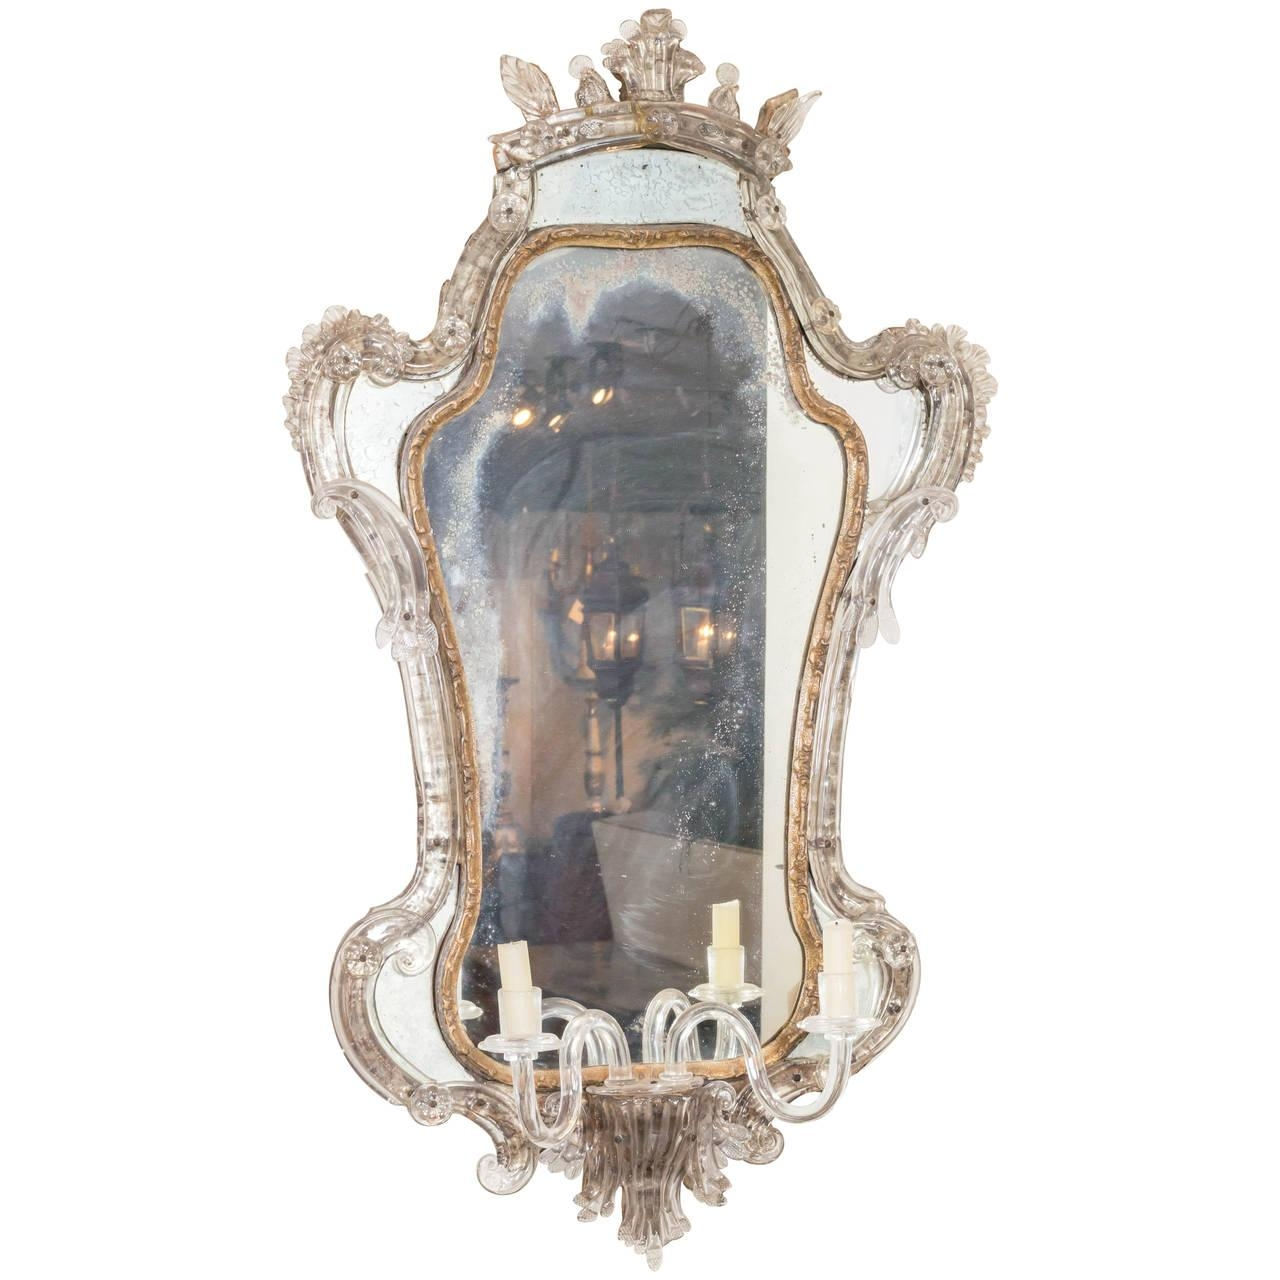 Antique Venetian Glass Mirror With Blown Glass Sconce, Italy Circa In Antique Venetian Glass Mirror (Image 6 of 20)